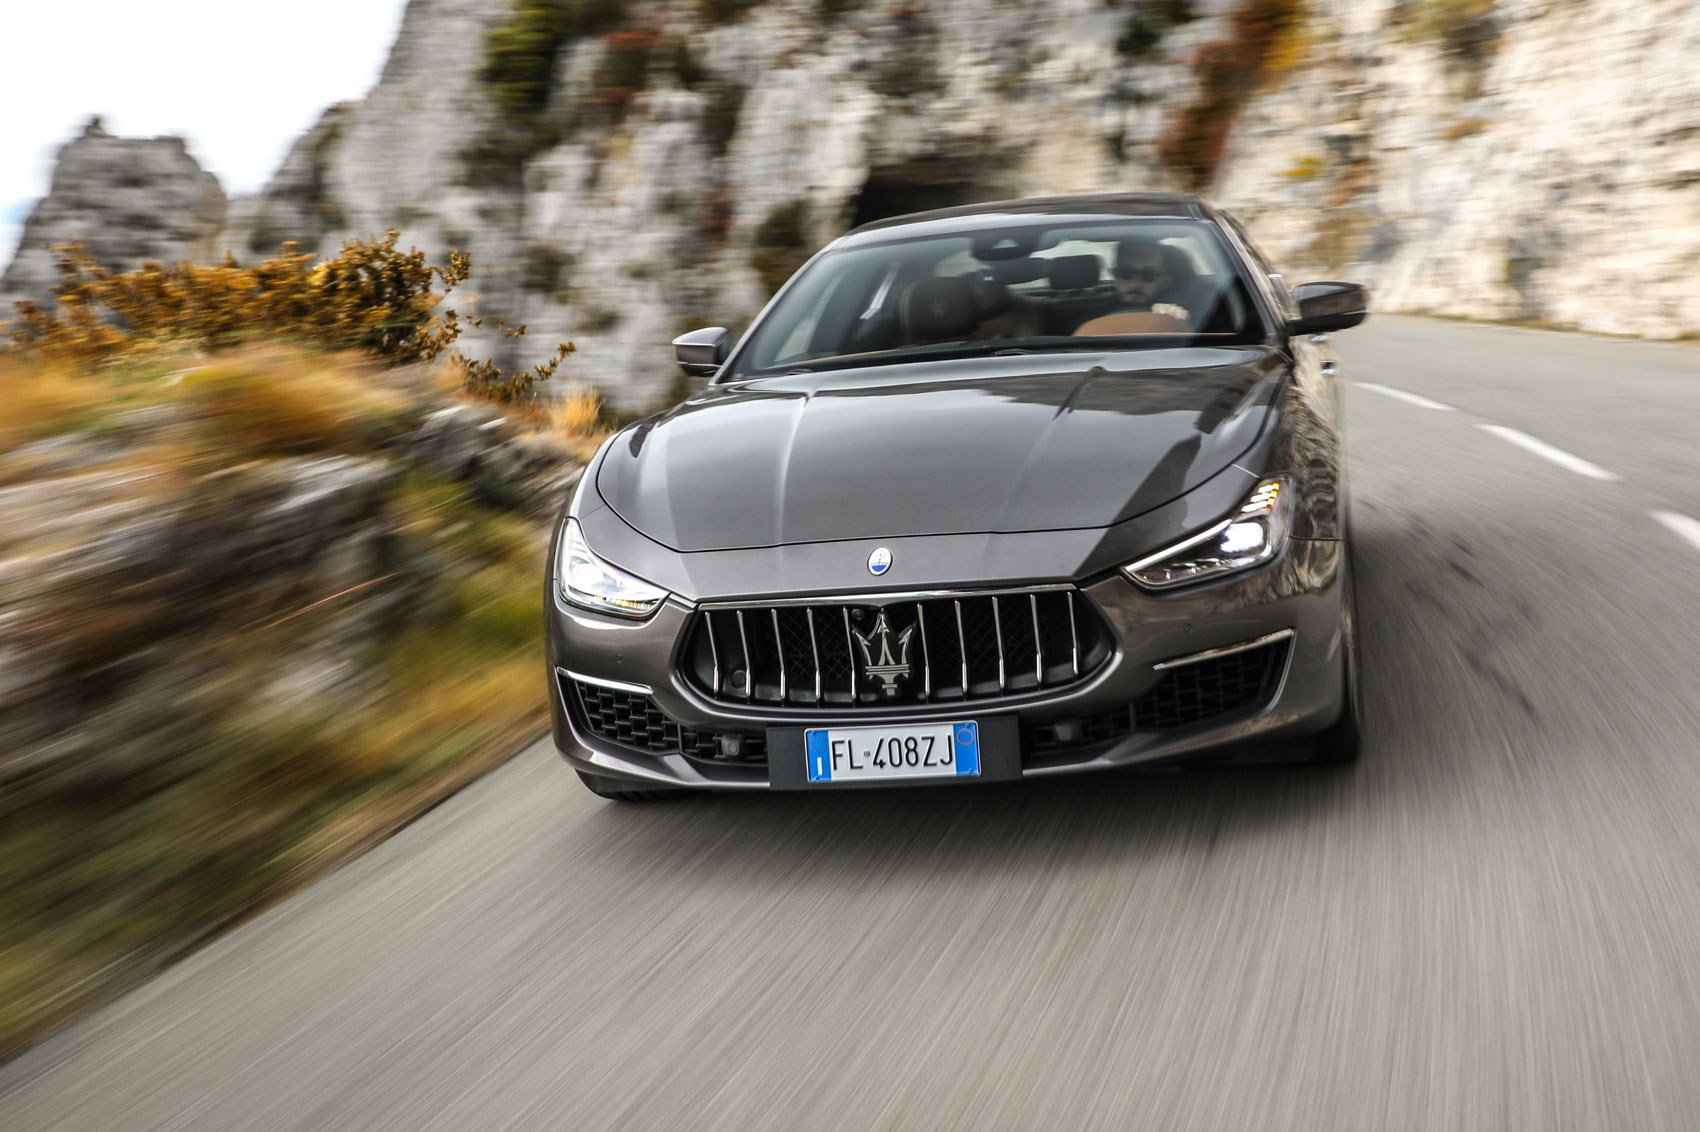 Used Toyota For Sale >> Maserati Ghibli (2018) review | CAR Magazine